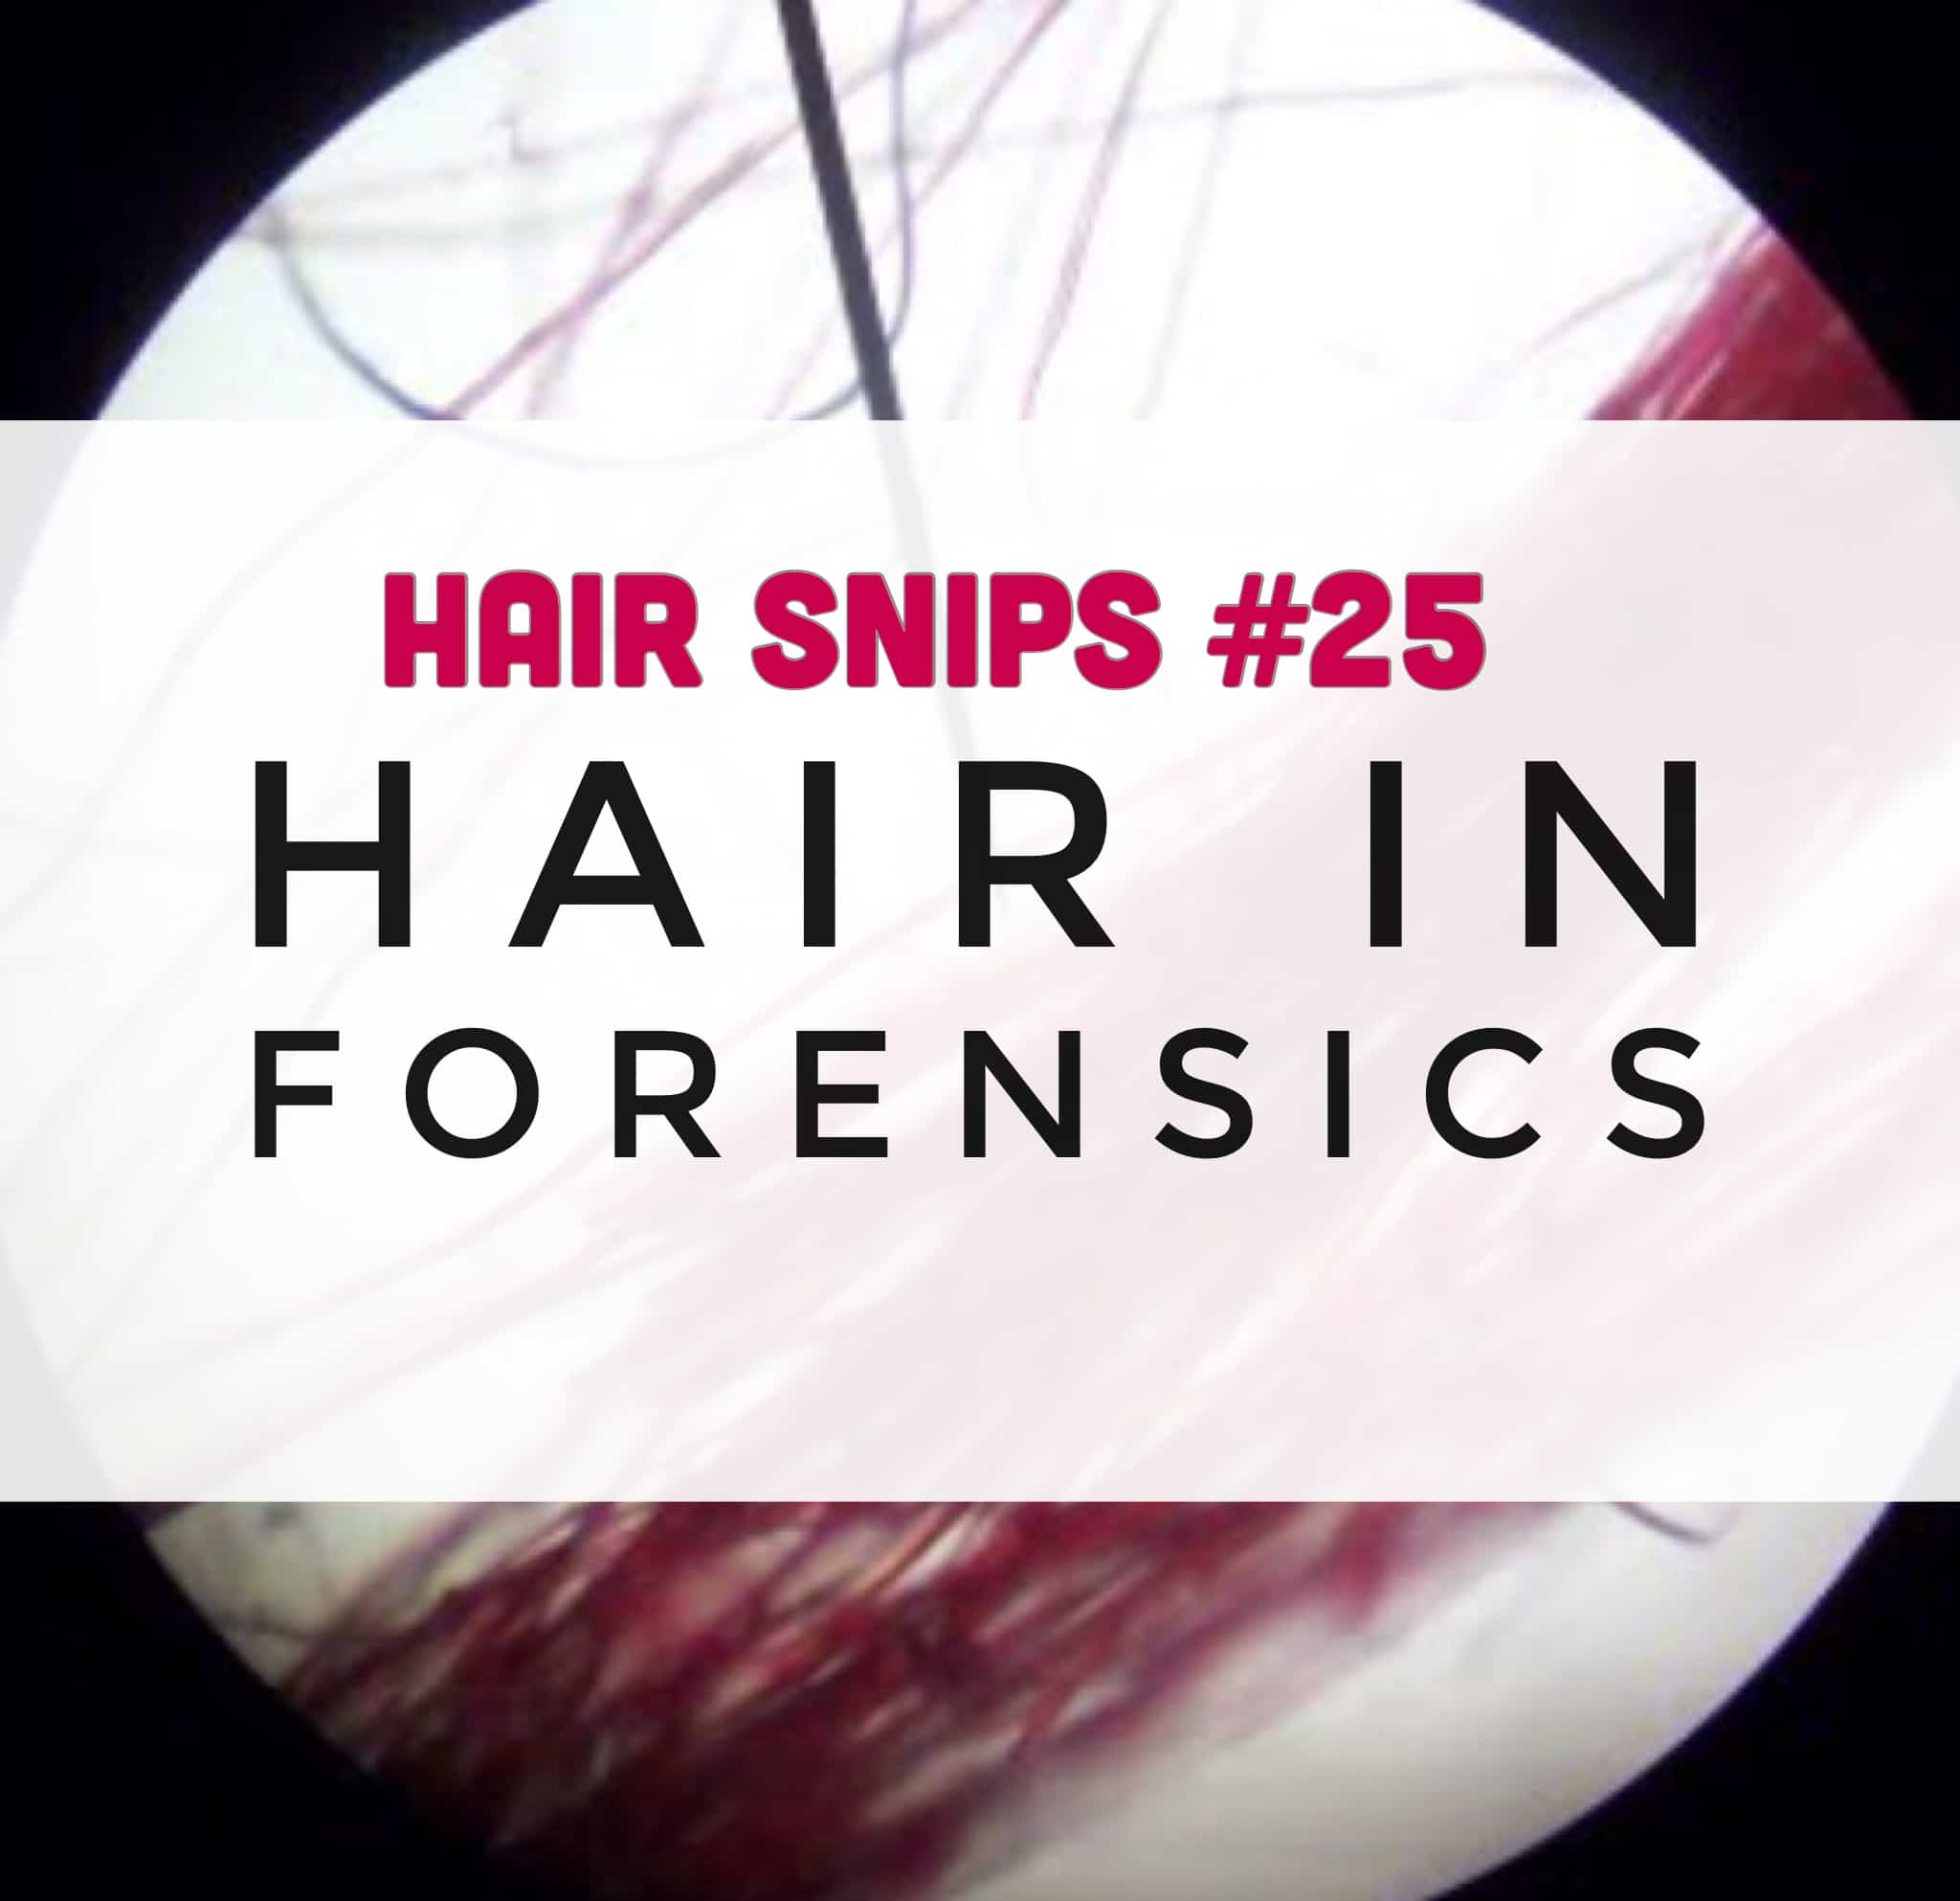 Do you know everything scientists can tell about you from a single strand of hair? Learn all about hair in forensics...